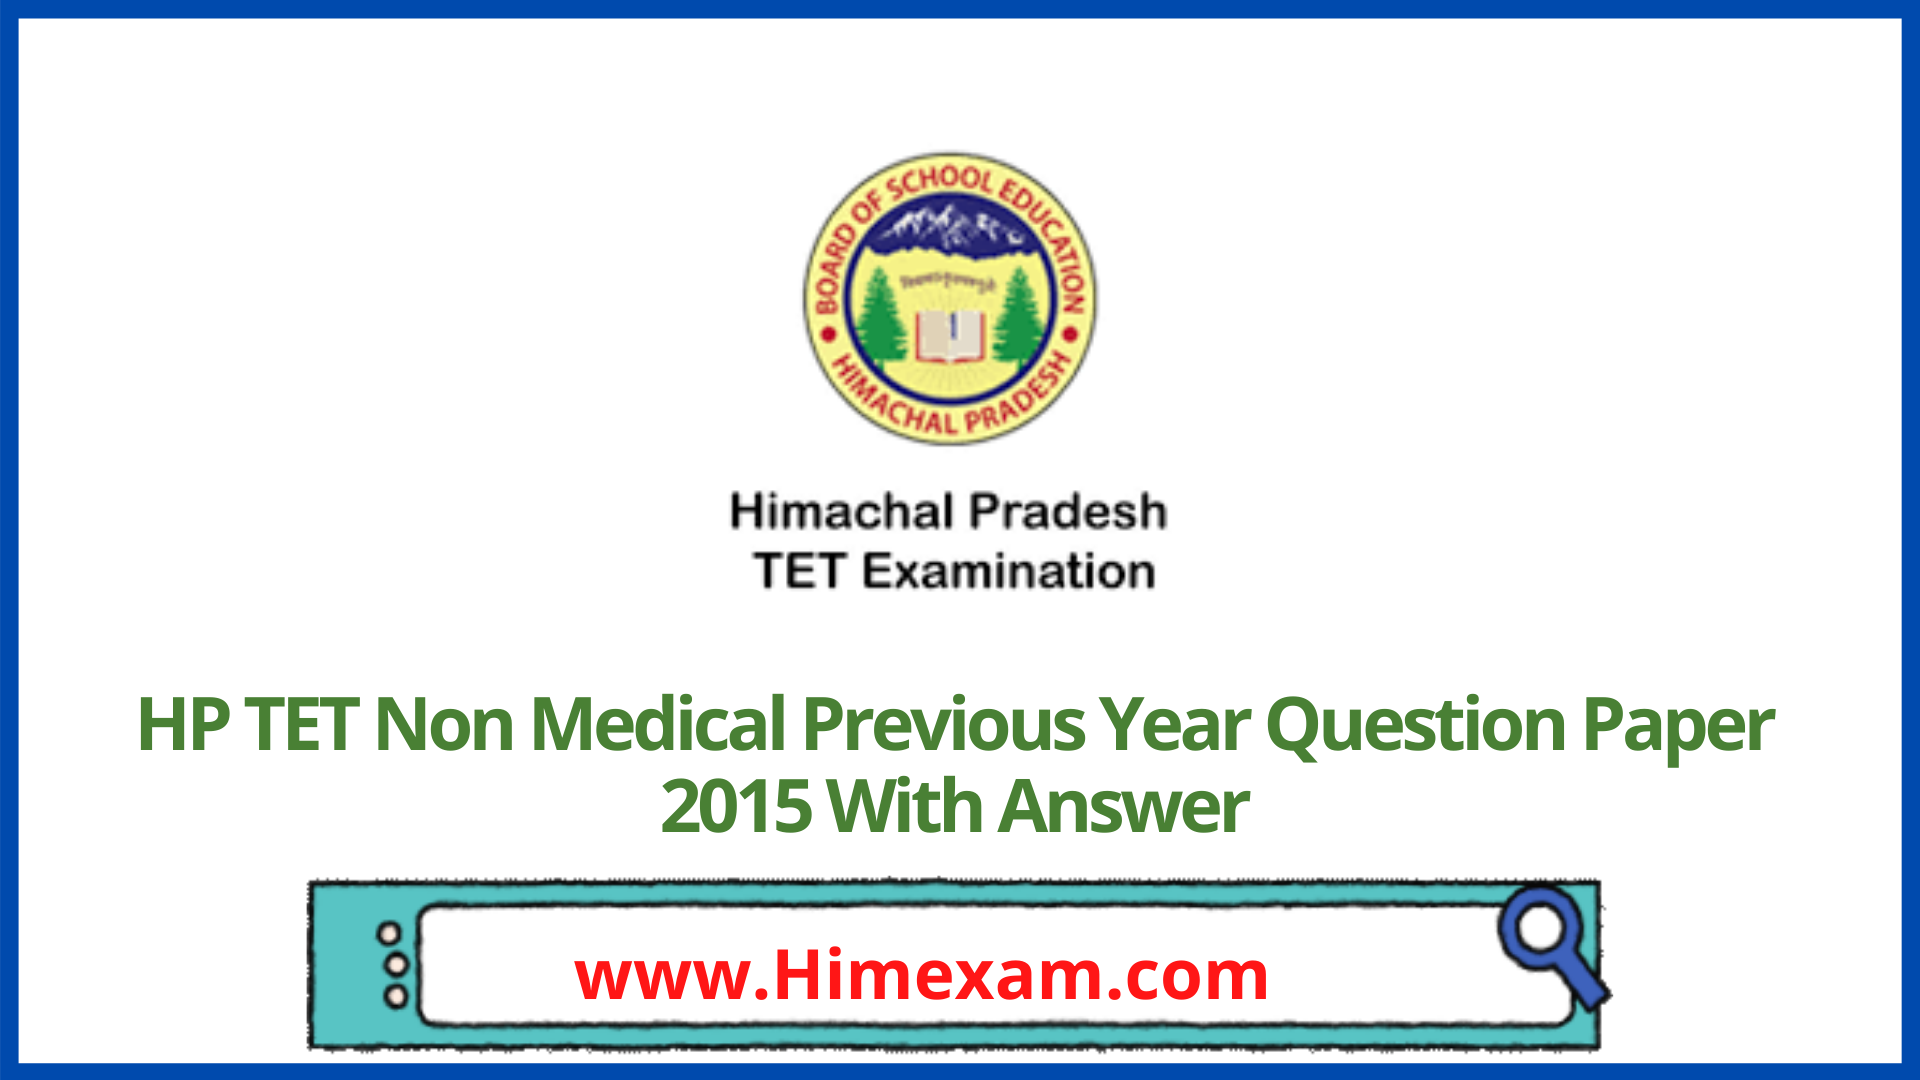 HP TET Non Medical Previous Year Question Paper 2015 With Answer